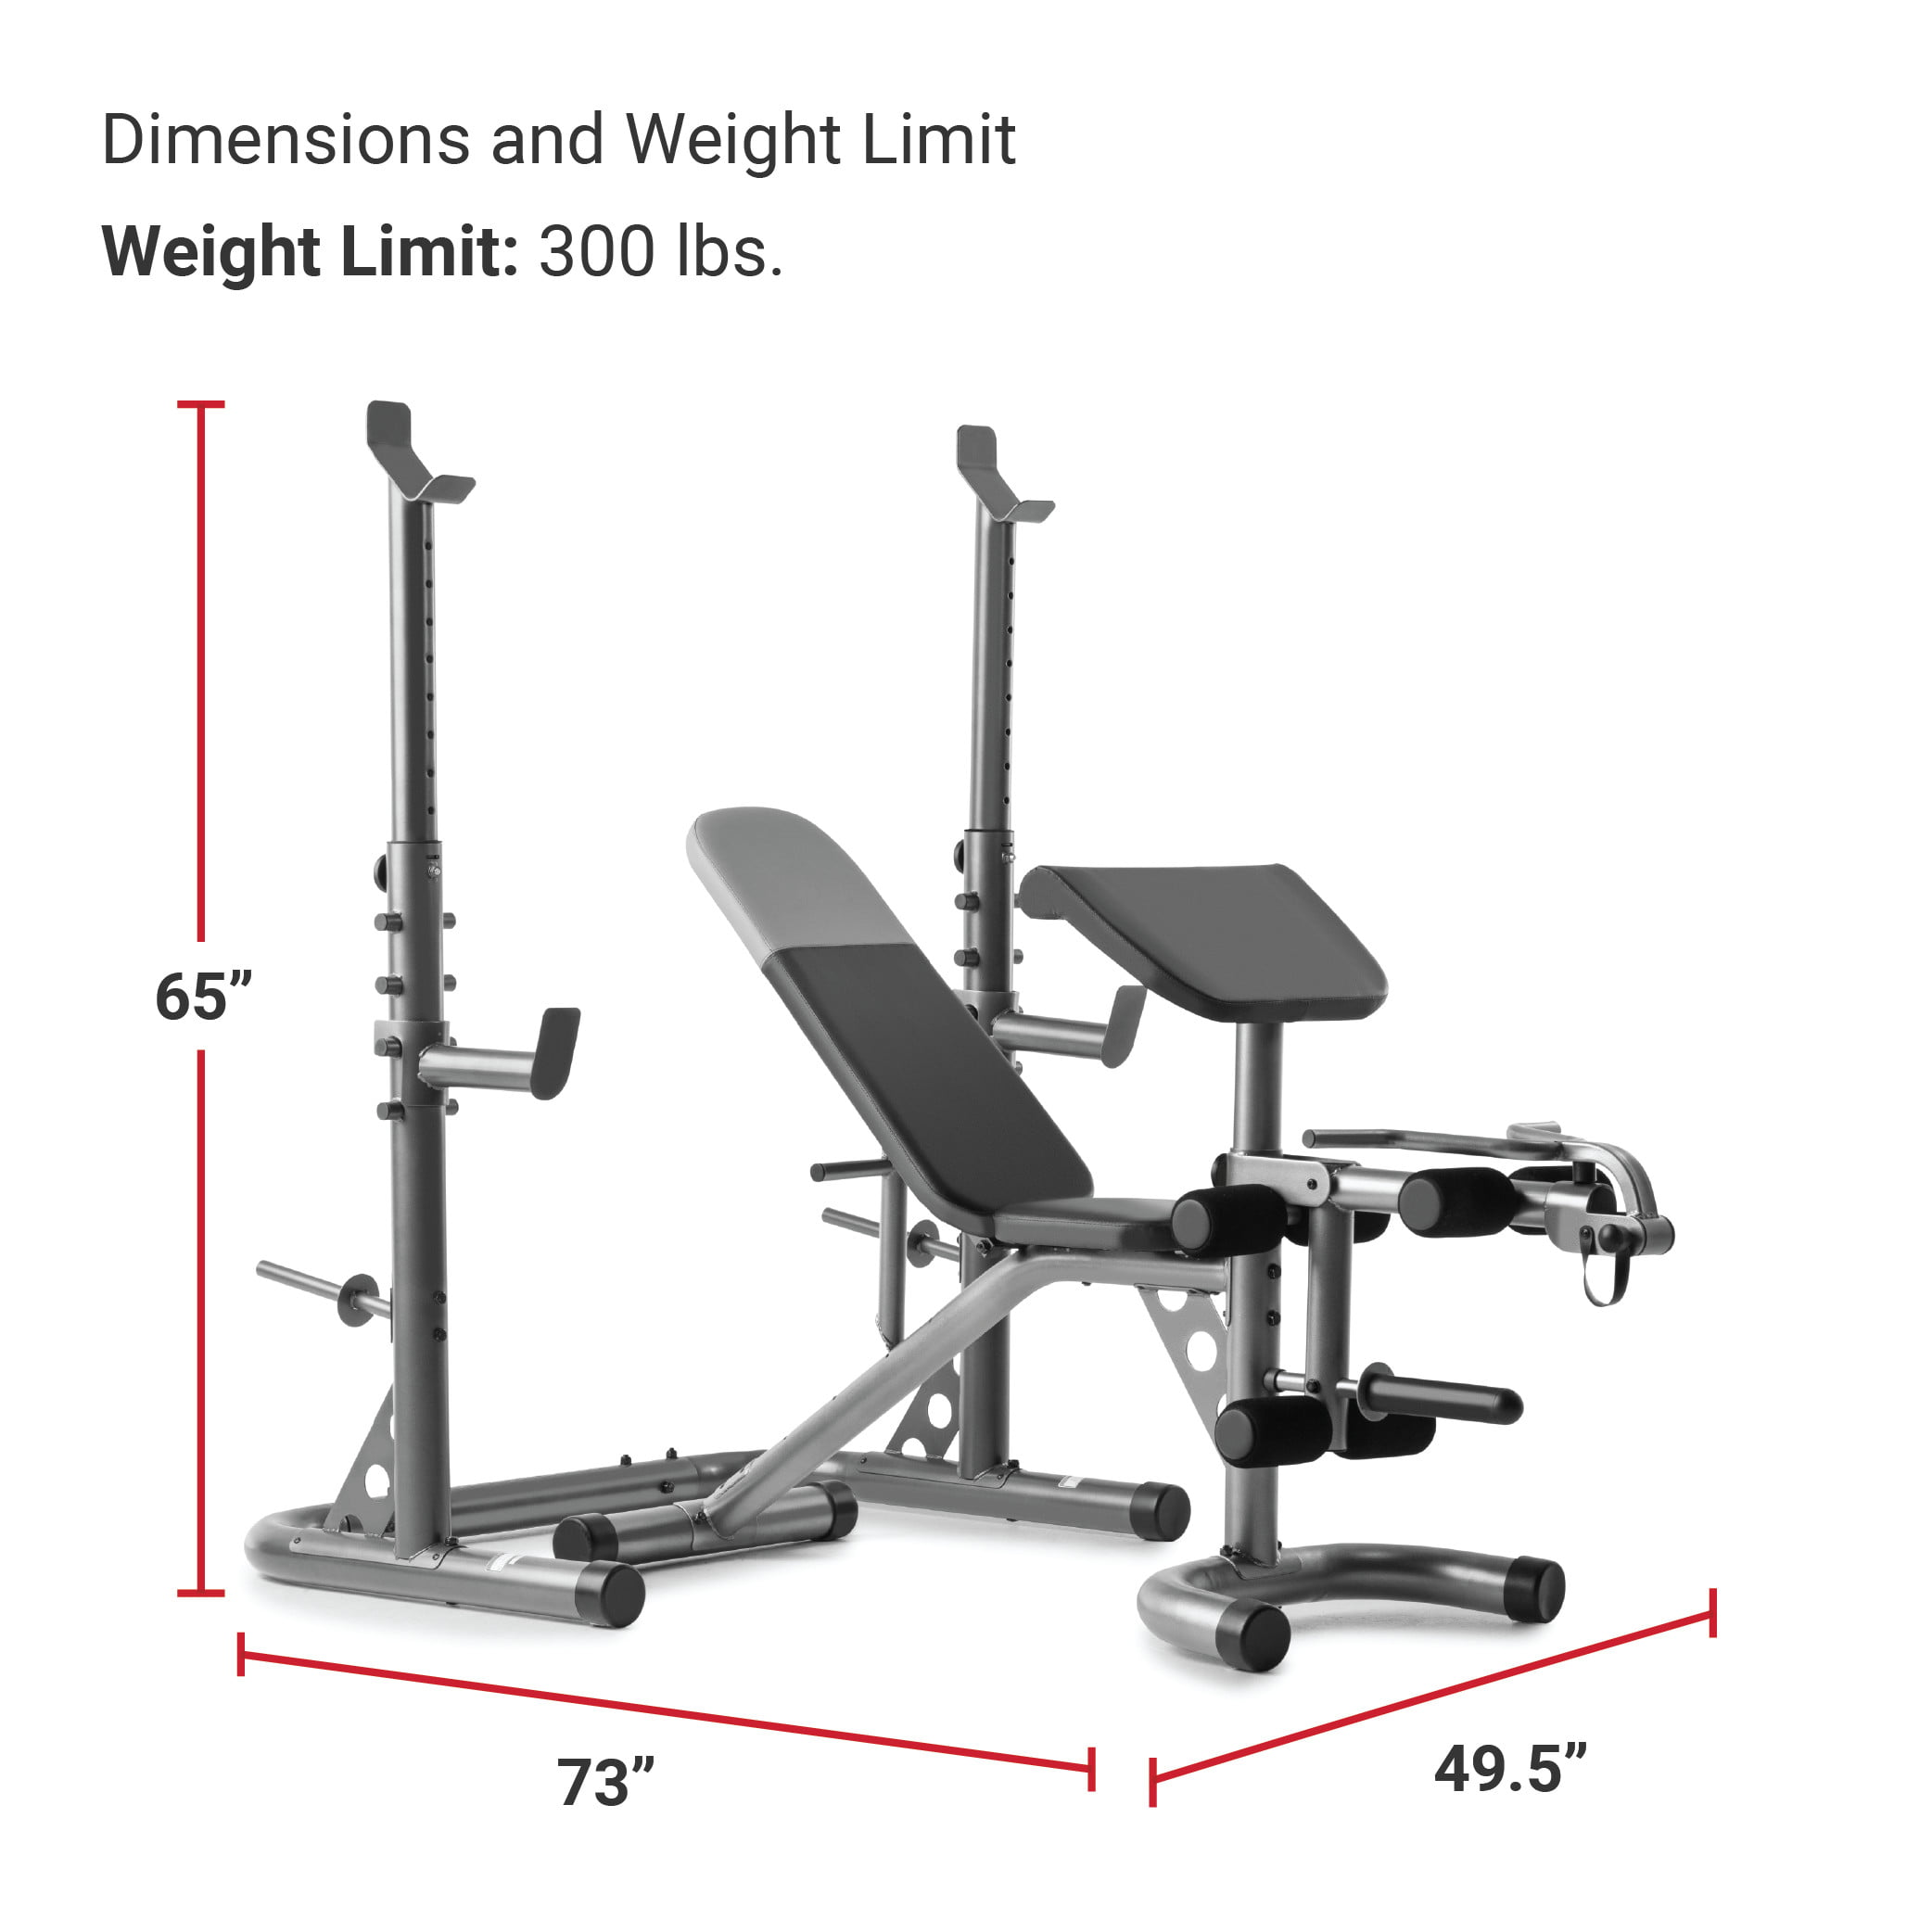 Weider Xrs 20 Adjustable Bench With Olympic Squat Rack And Preacher Pad 610 Lb Weight Limit Walmart Com Walmart Com